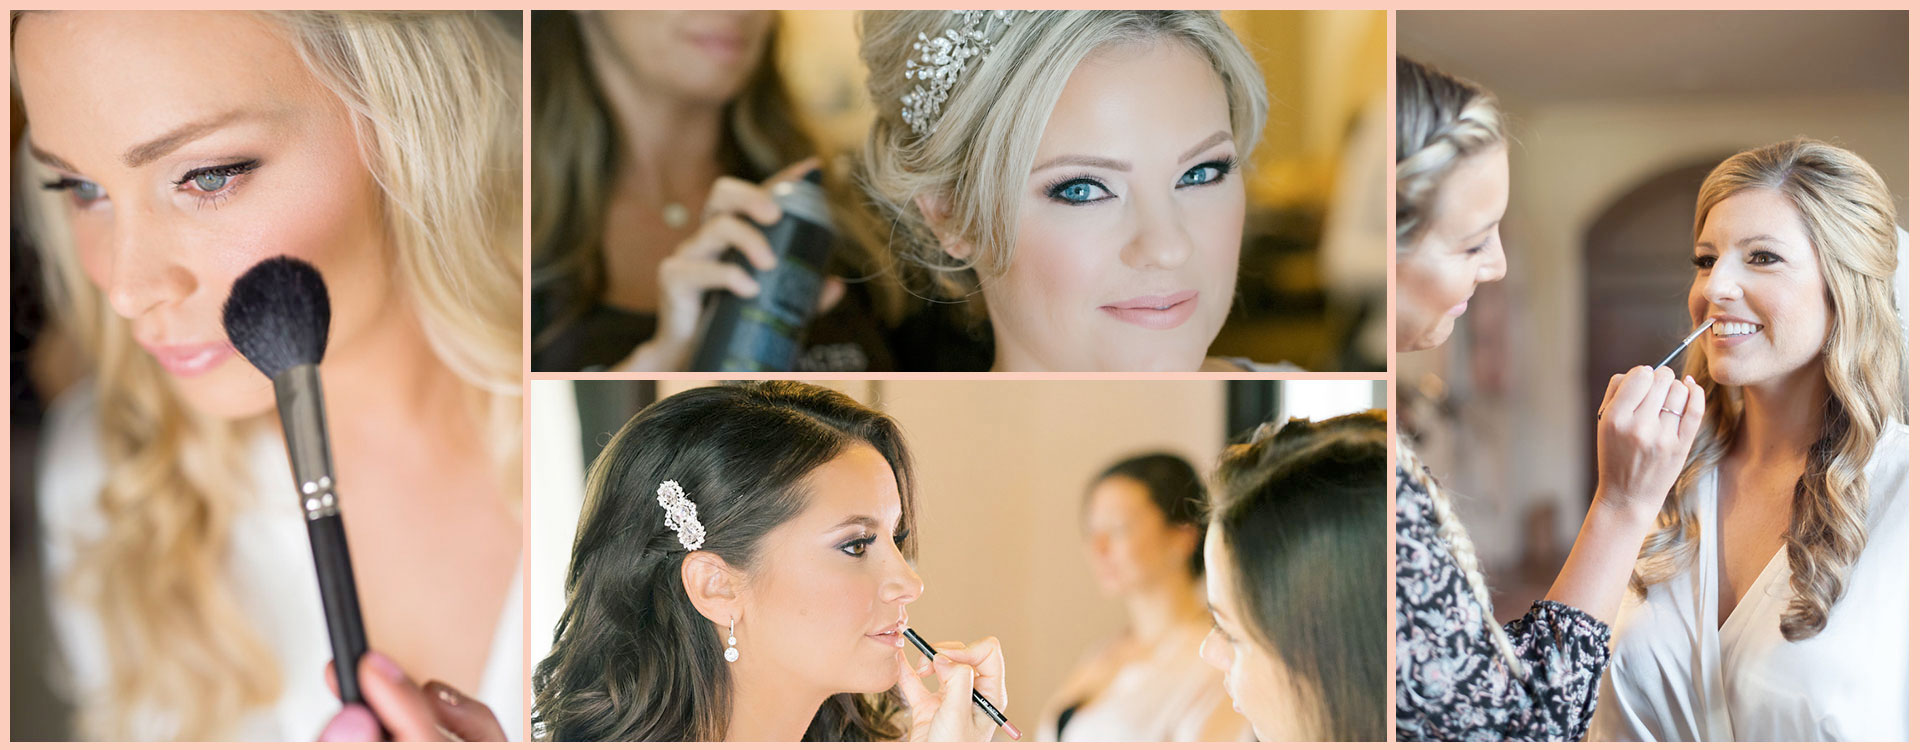 Makeup, Hair and Beauty Boutique | Flawless Faces Inc